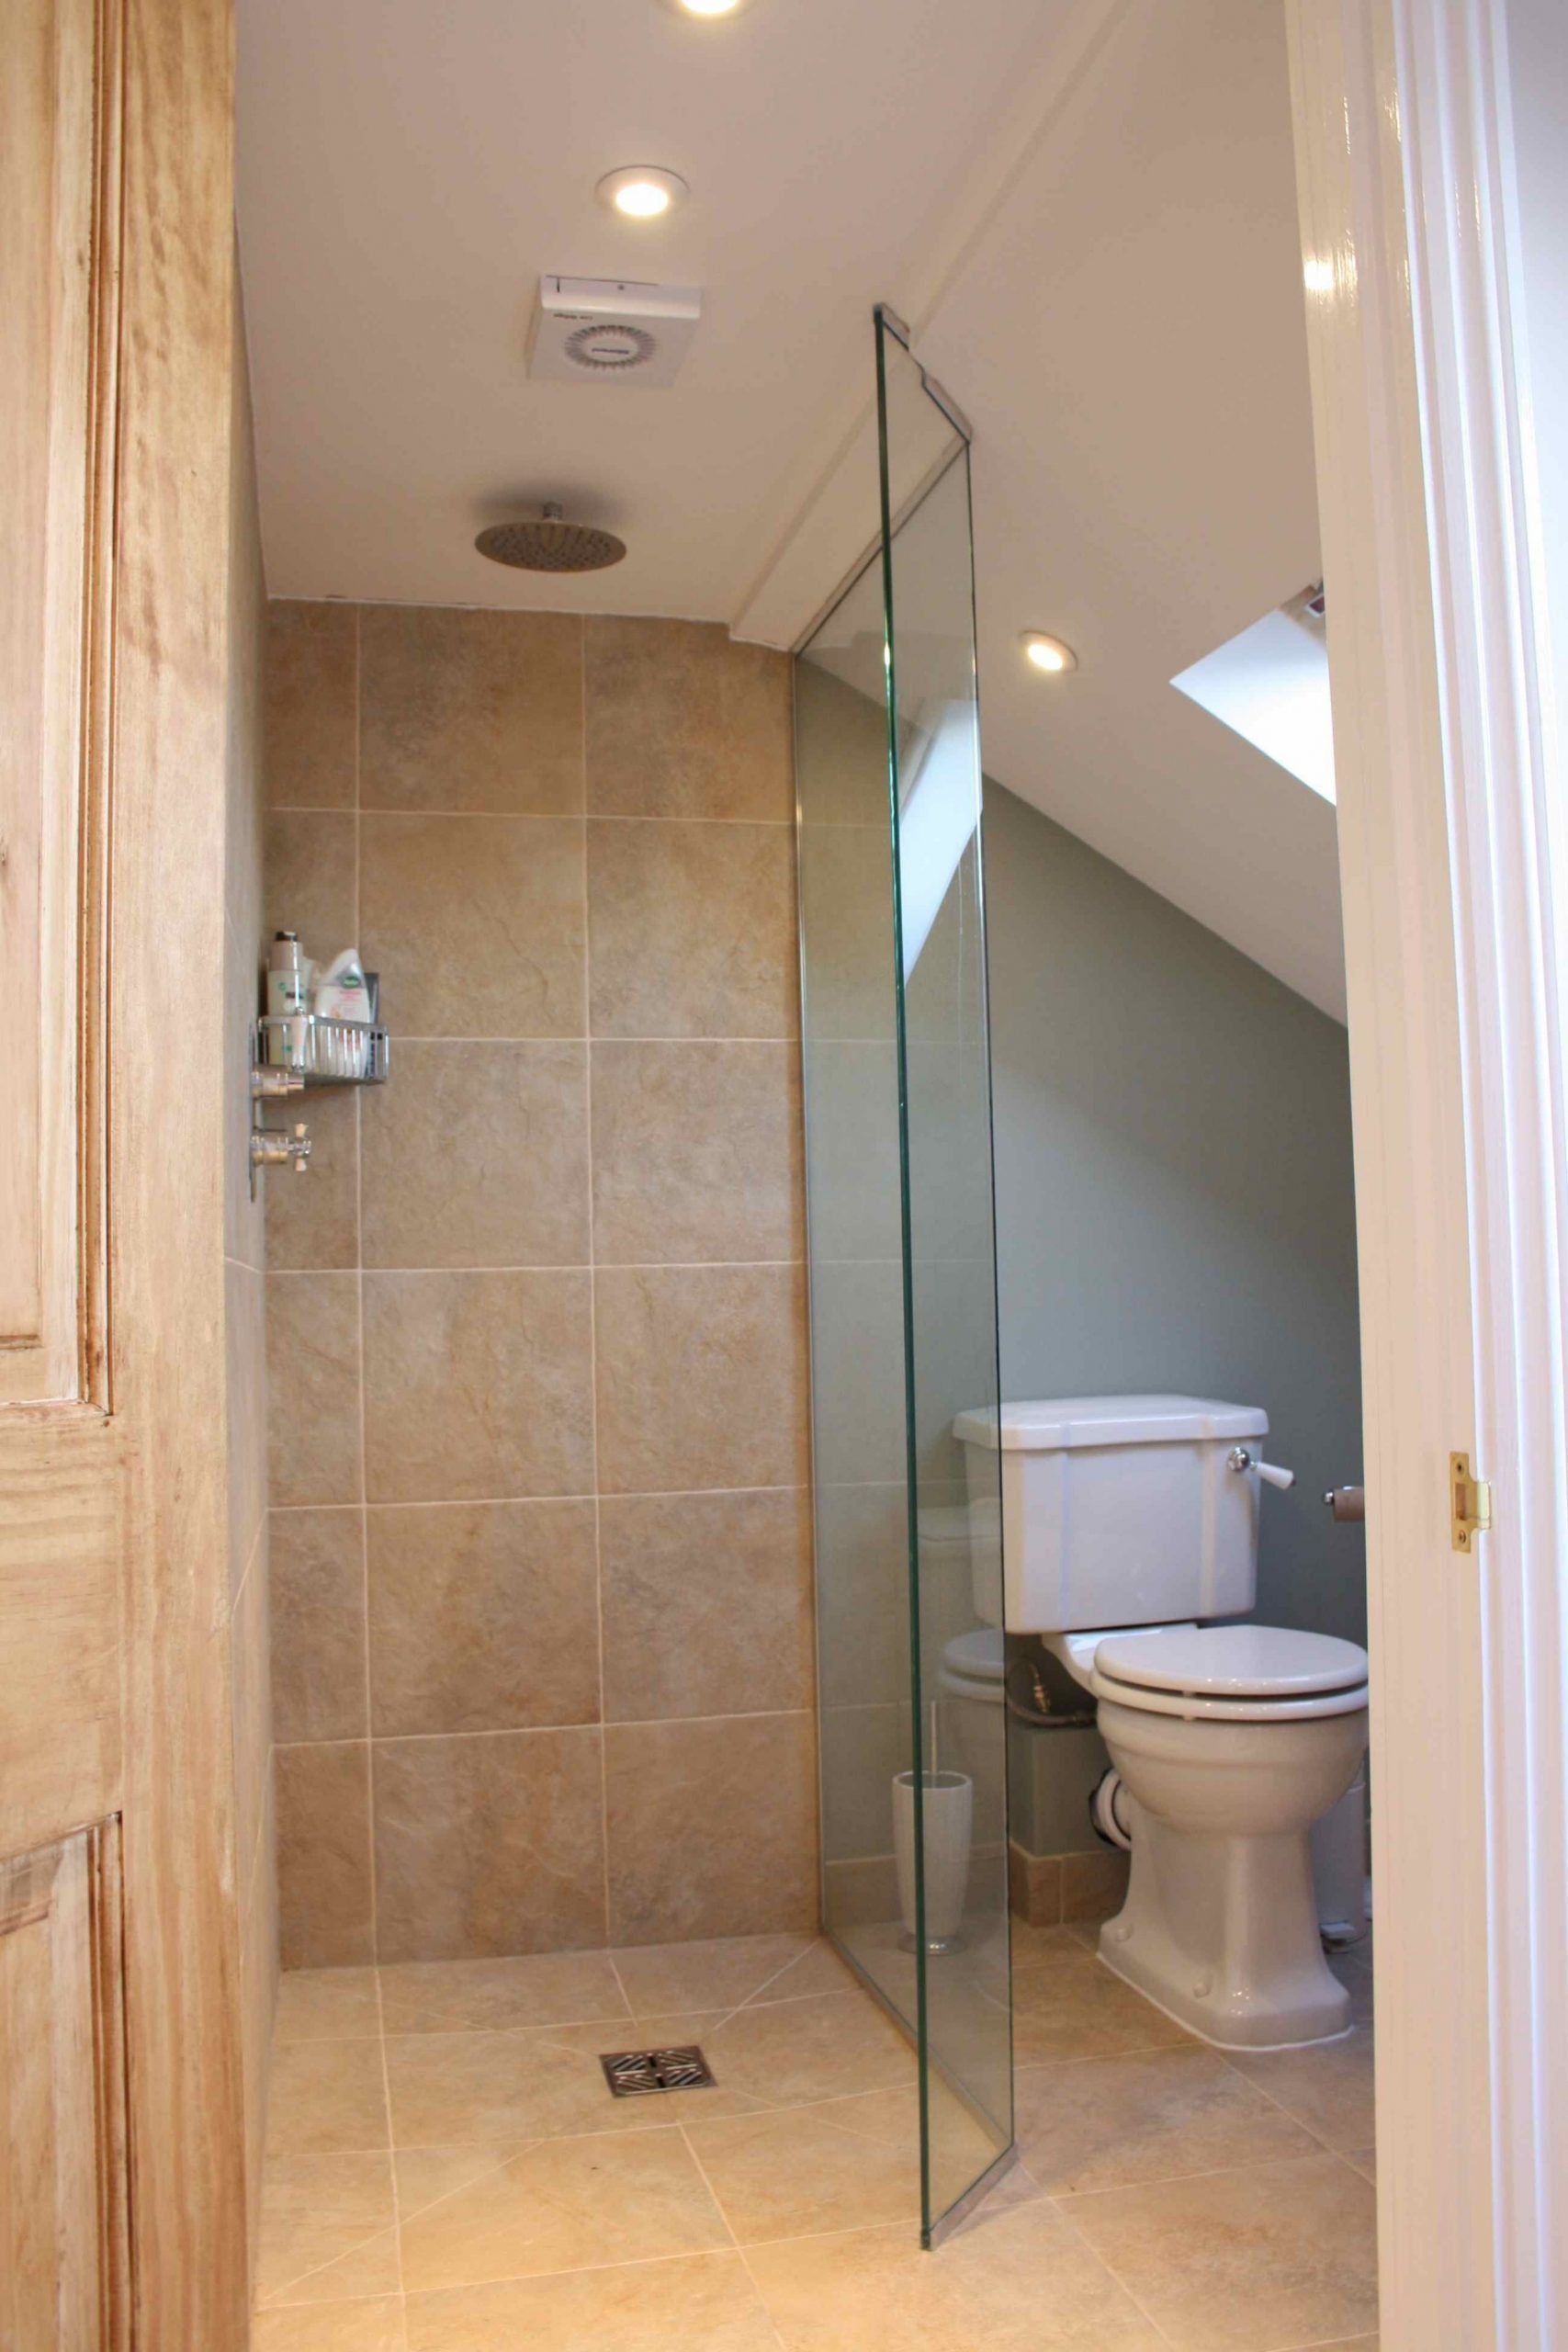 A Comprehensive Overview On Home Decoration In 2020 Small Shower Room Loft Bathroom Bathroom Layout